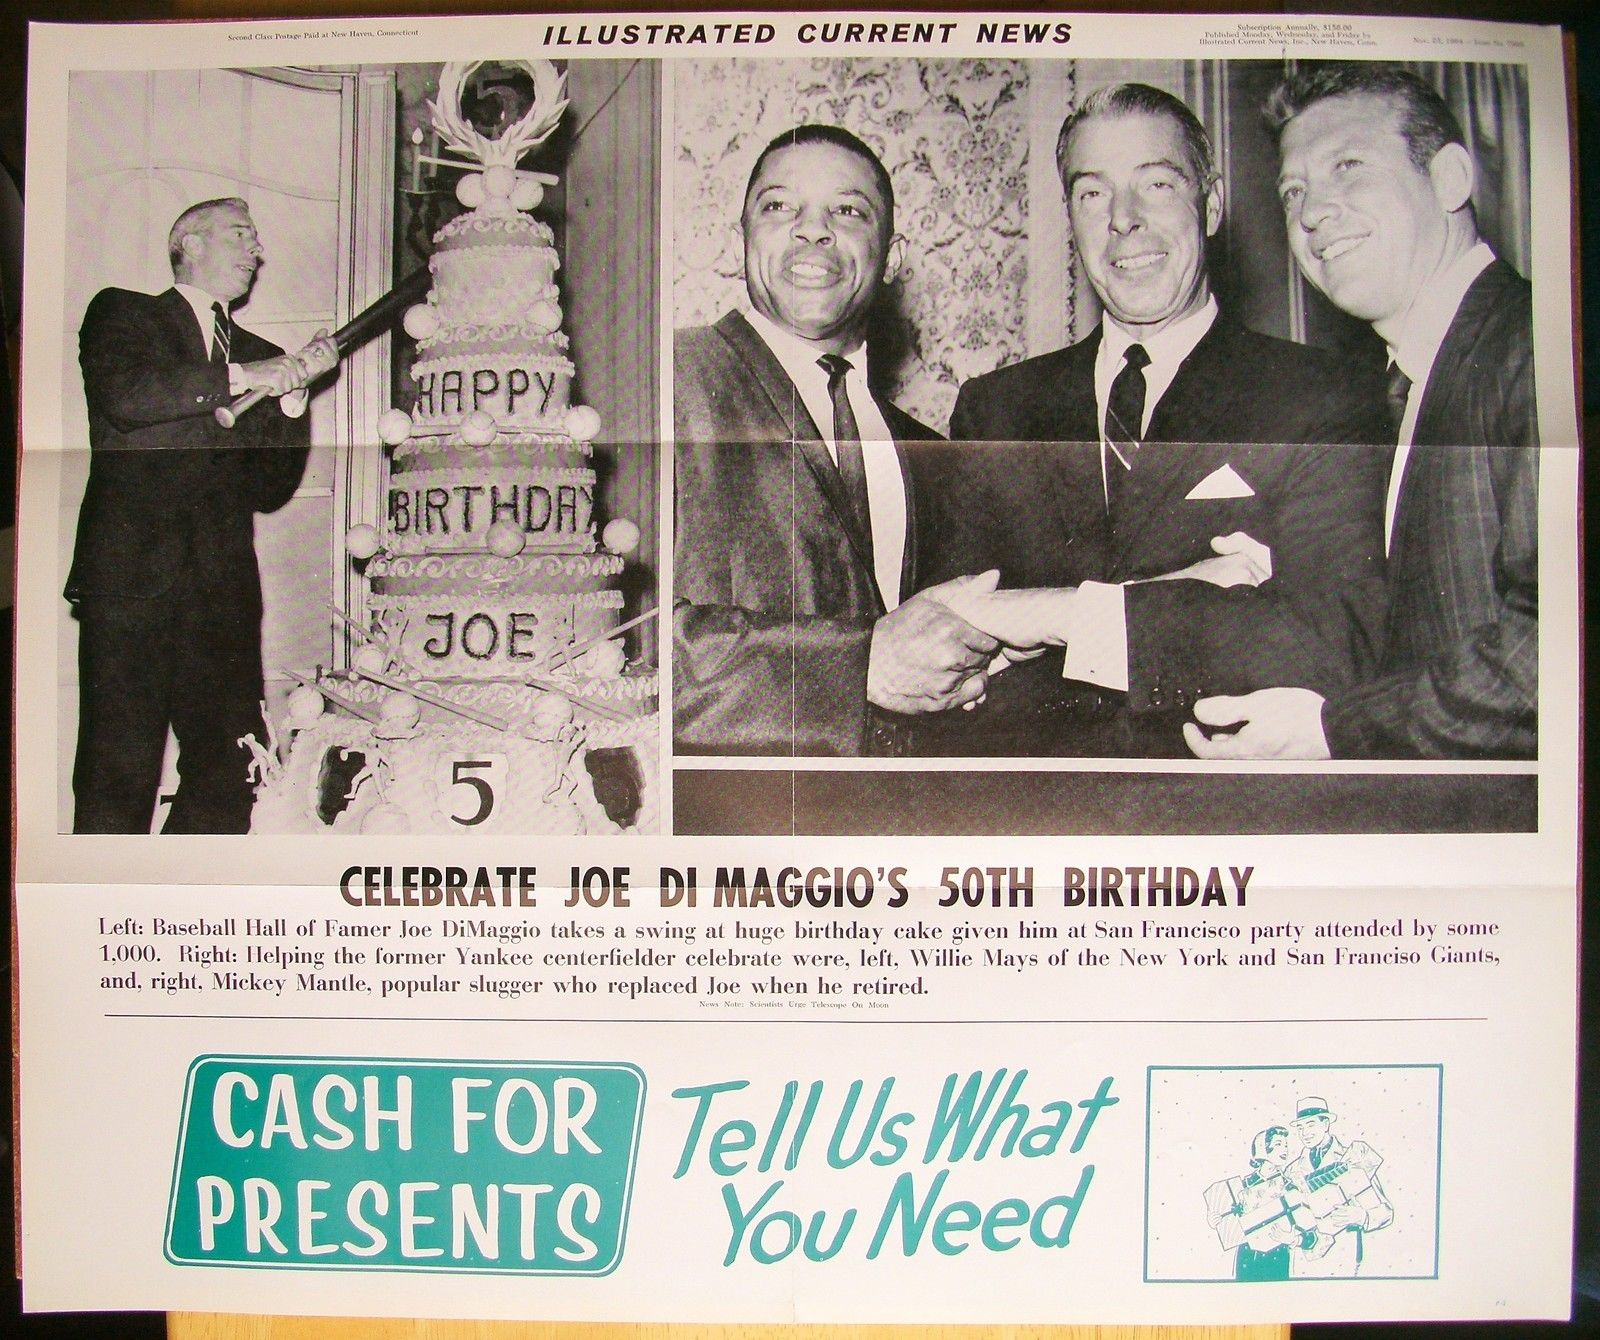 1964 illustrated current news